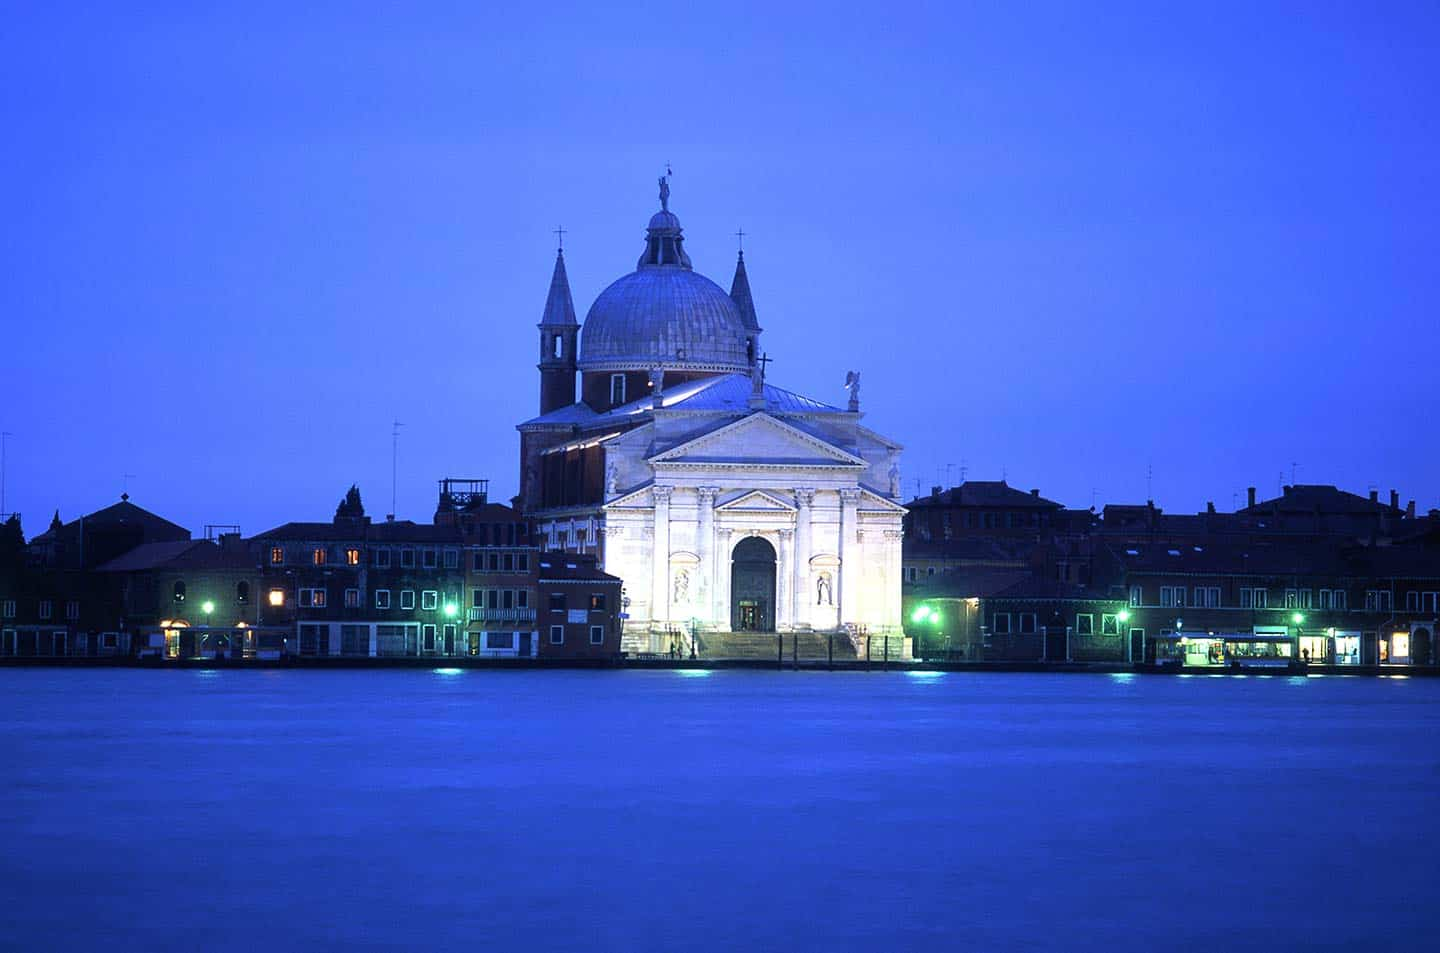 Image of the Redentore church on the island of Giudecca, Venice